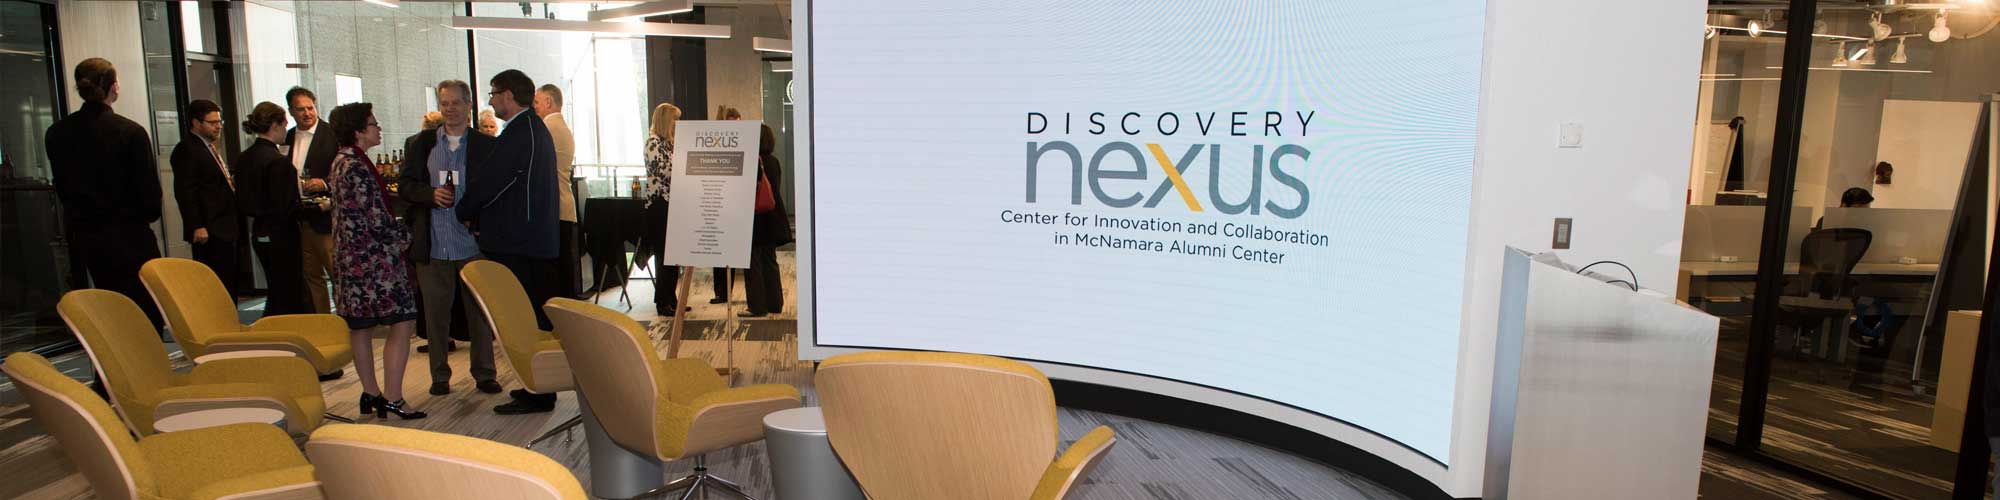 Discover Nexus large screen